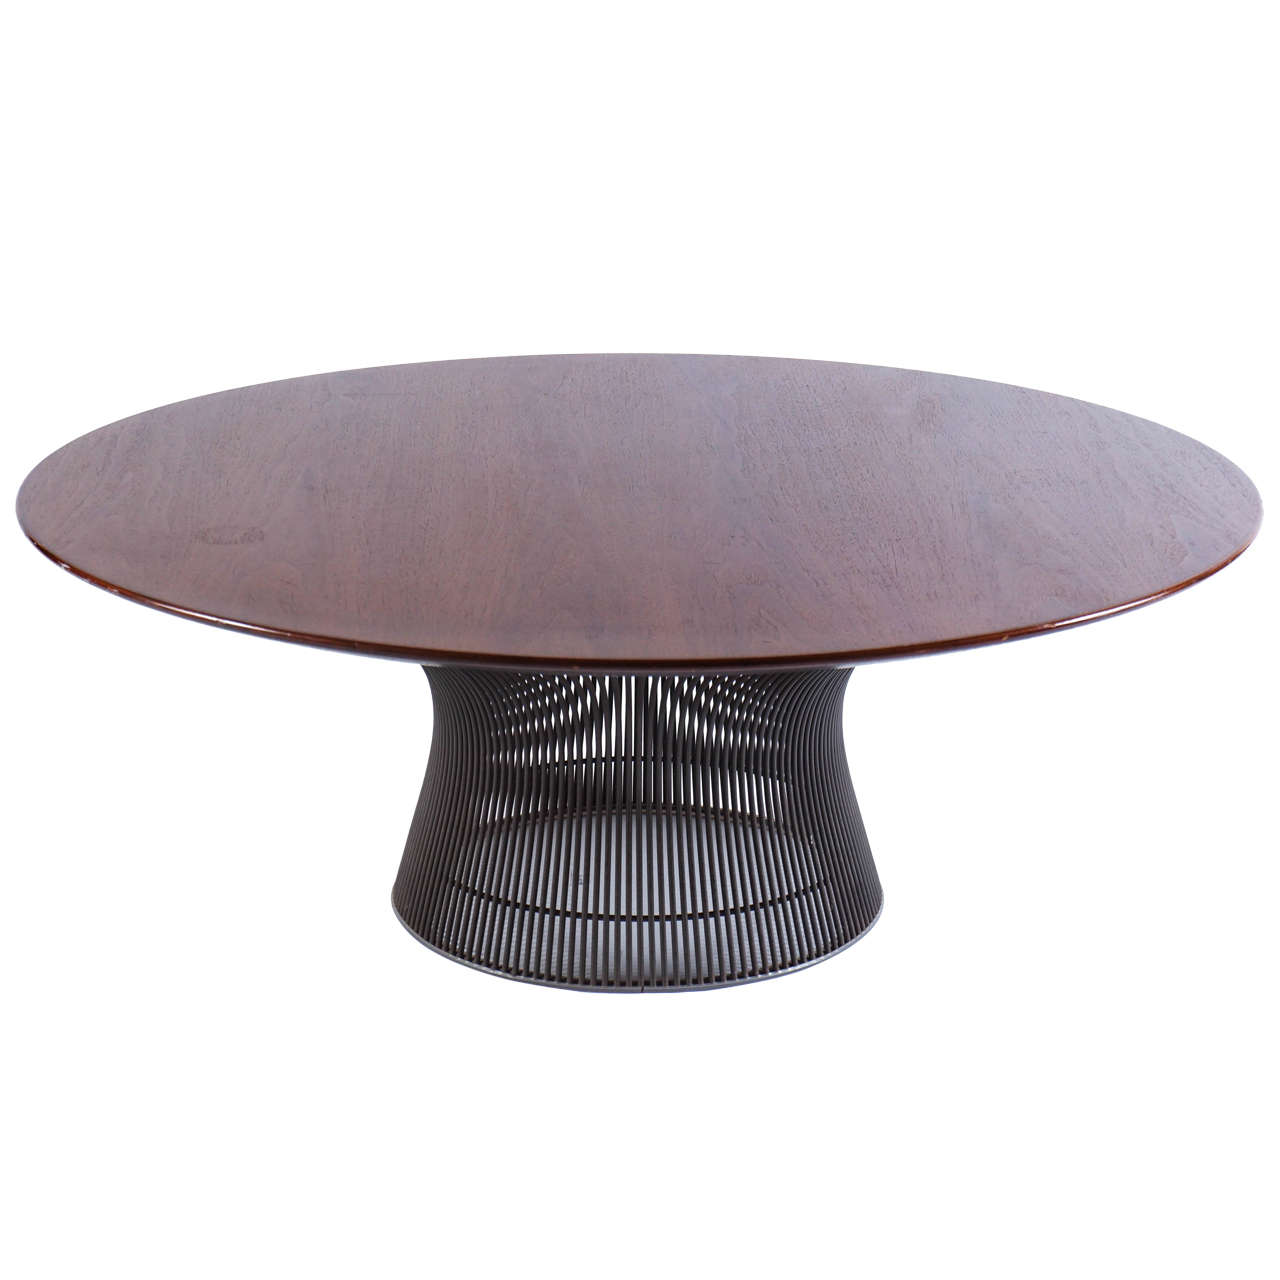 walnut and bronze round coffee table by warren platner for knoll